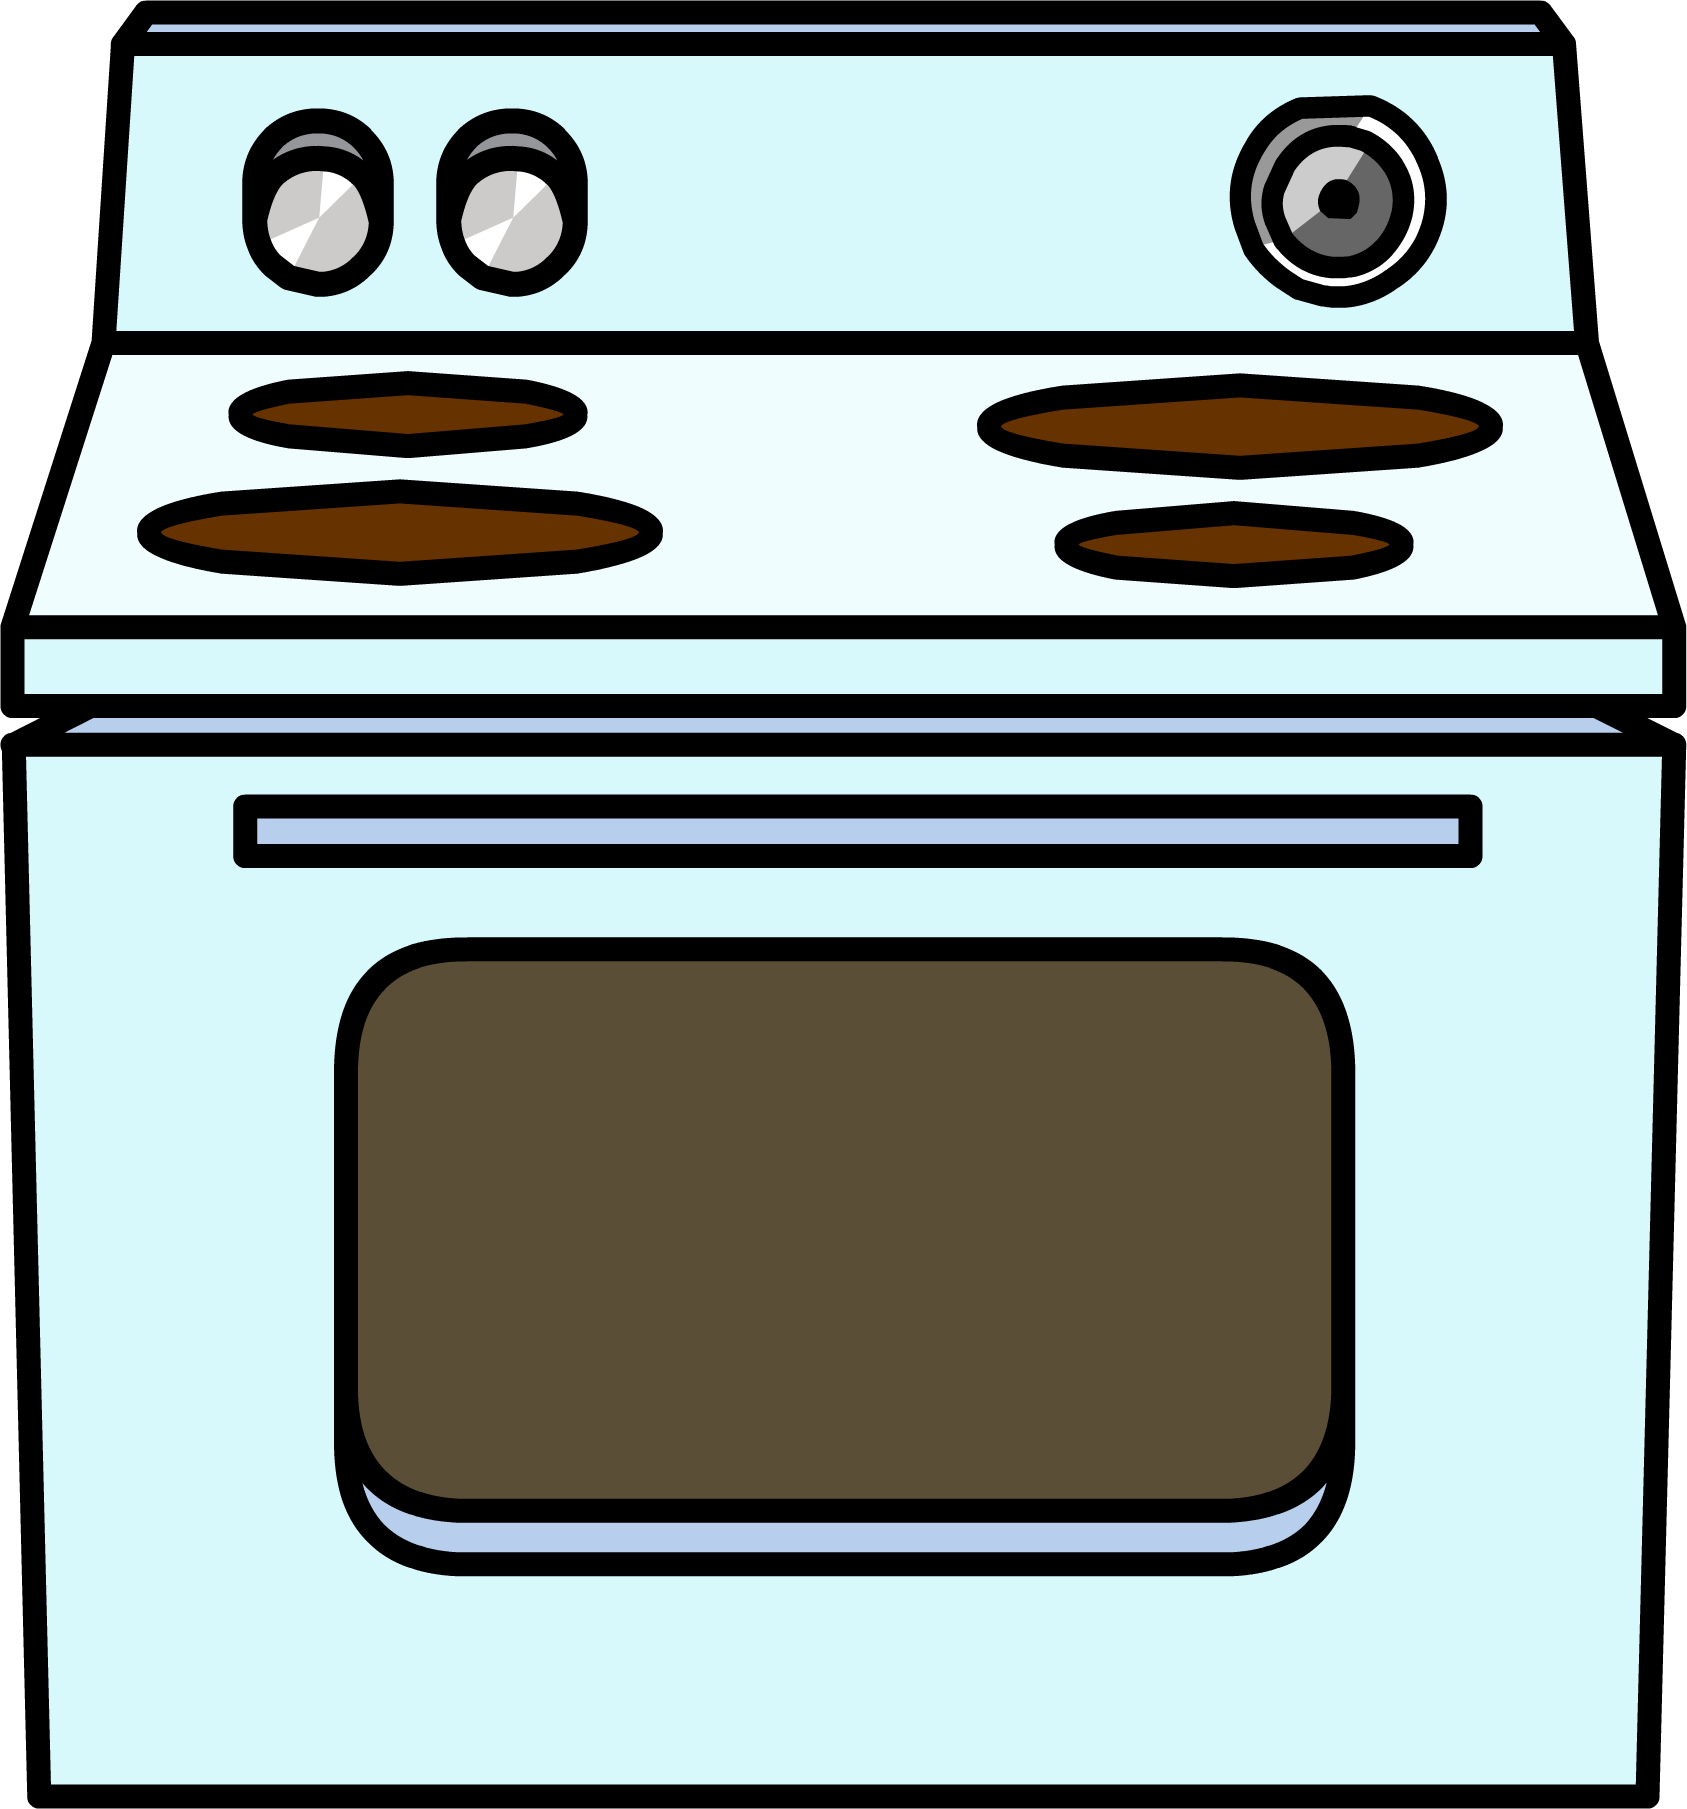 image electric stove png club penguin wiki fandom powered by wikia rh clubpenguin wikia com store clip art images stove black and white clipart